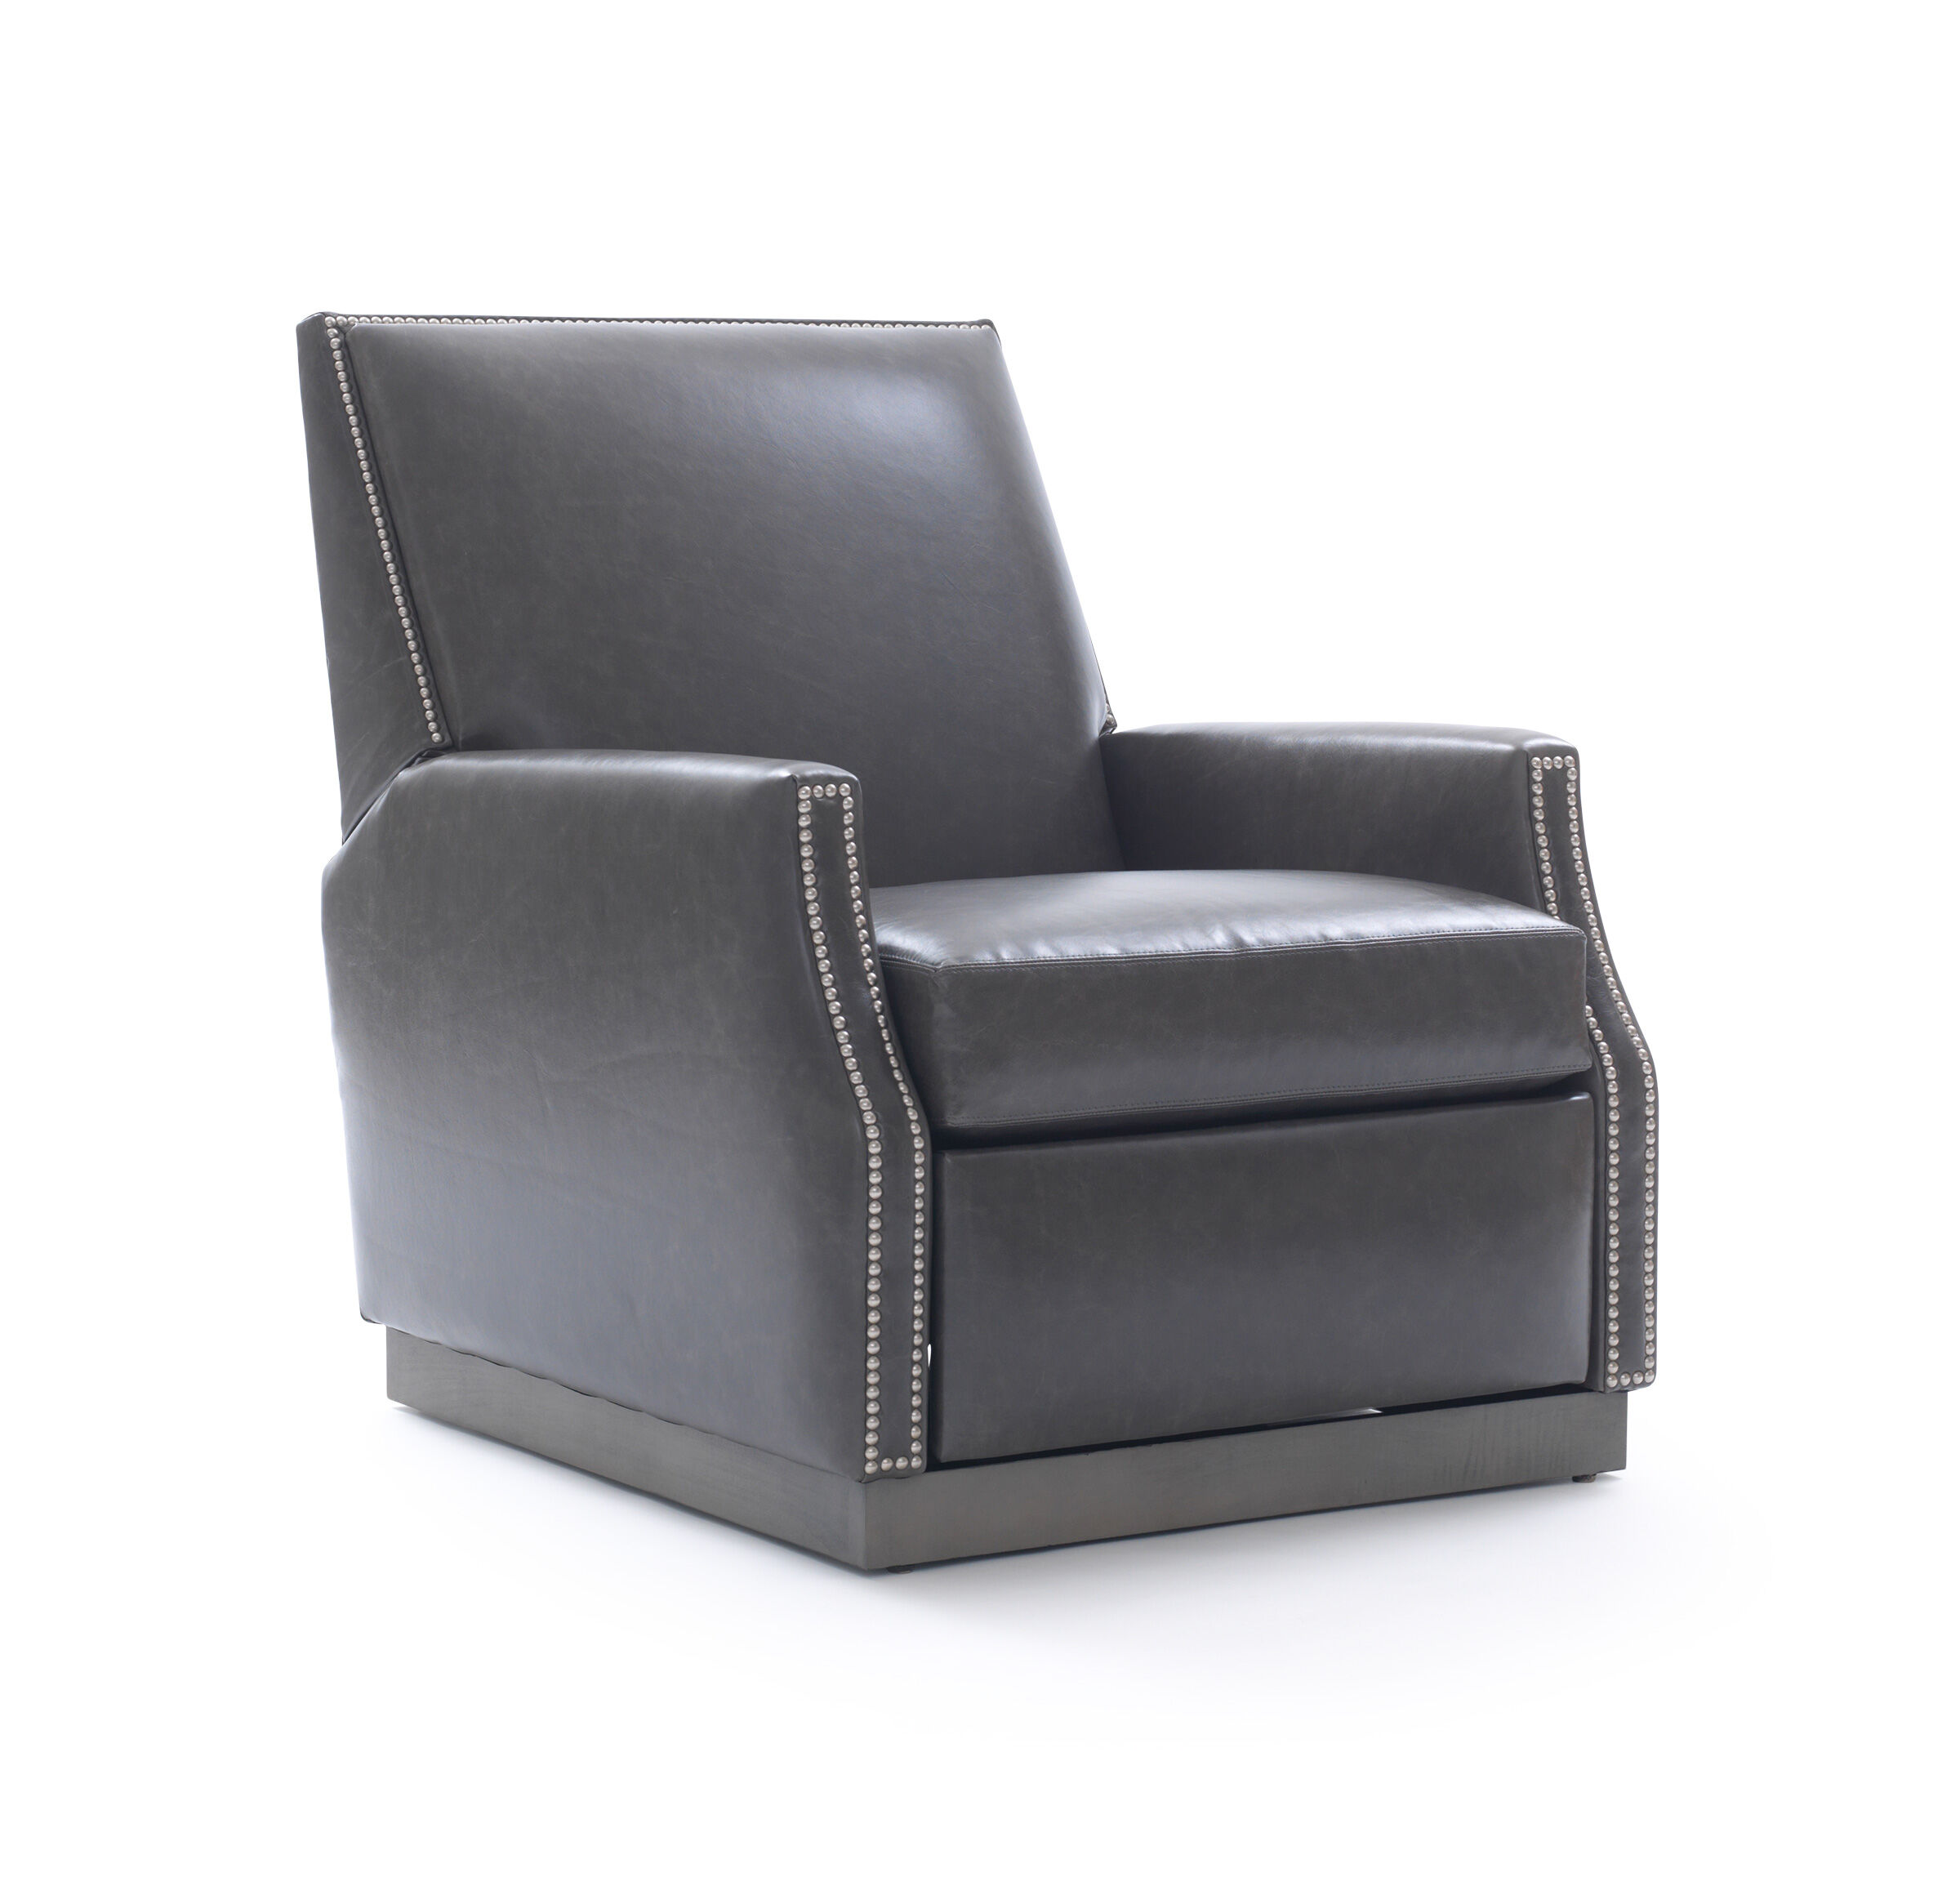 Beau BENSON LEATHER RECLINER, TUSCANY   GREY SLATE, Hi Res